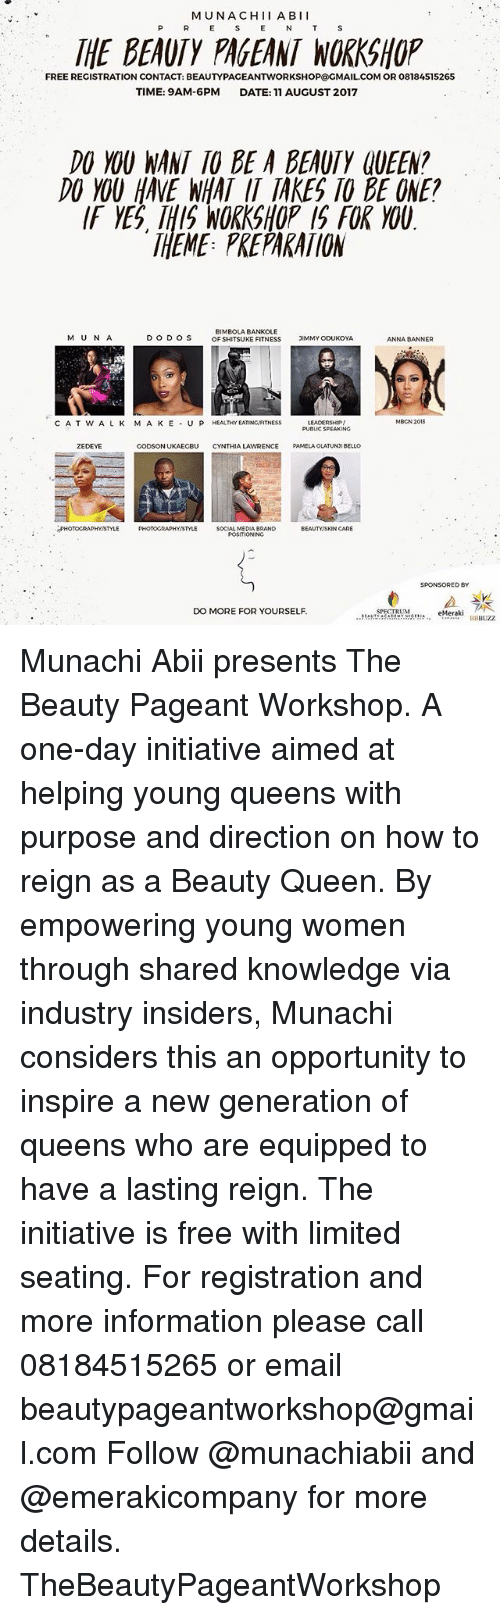 do beauty pageants serve a purpose Beauty contests have several purposes they have the purpose of building self-confidence, as well as getting scholorships.